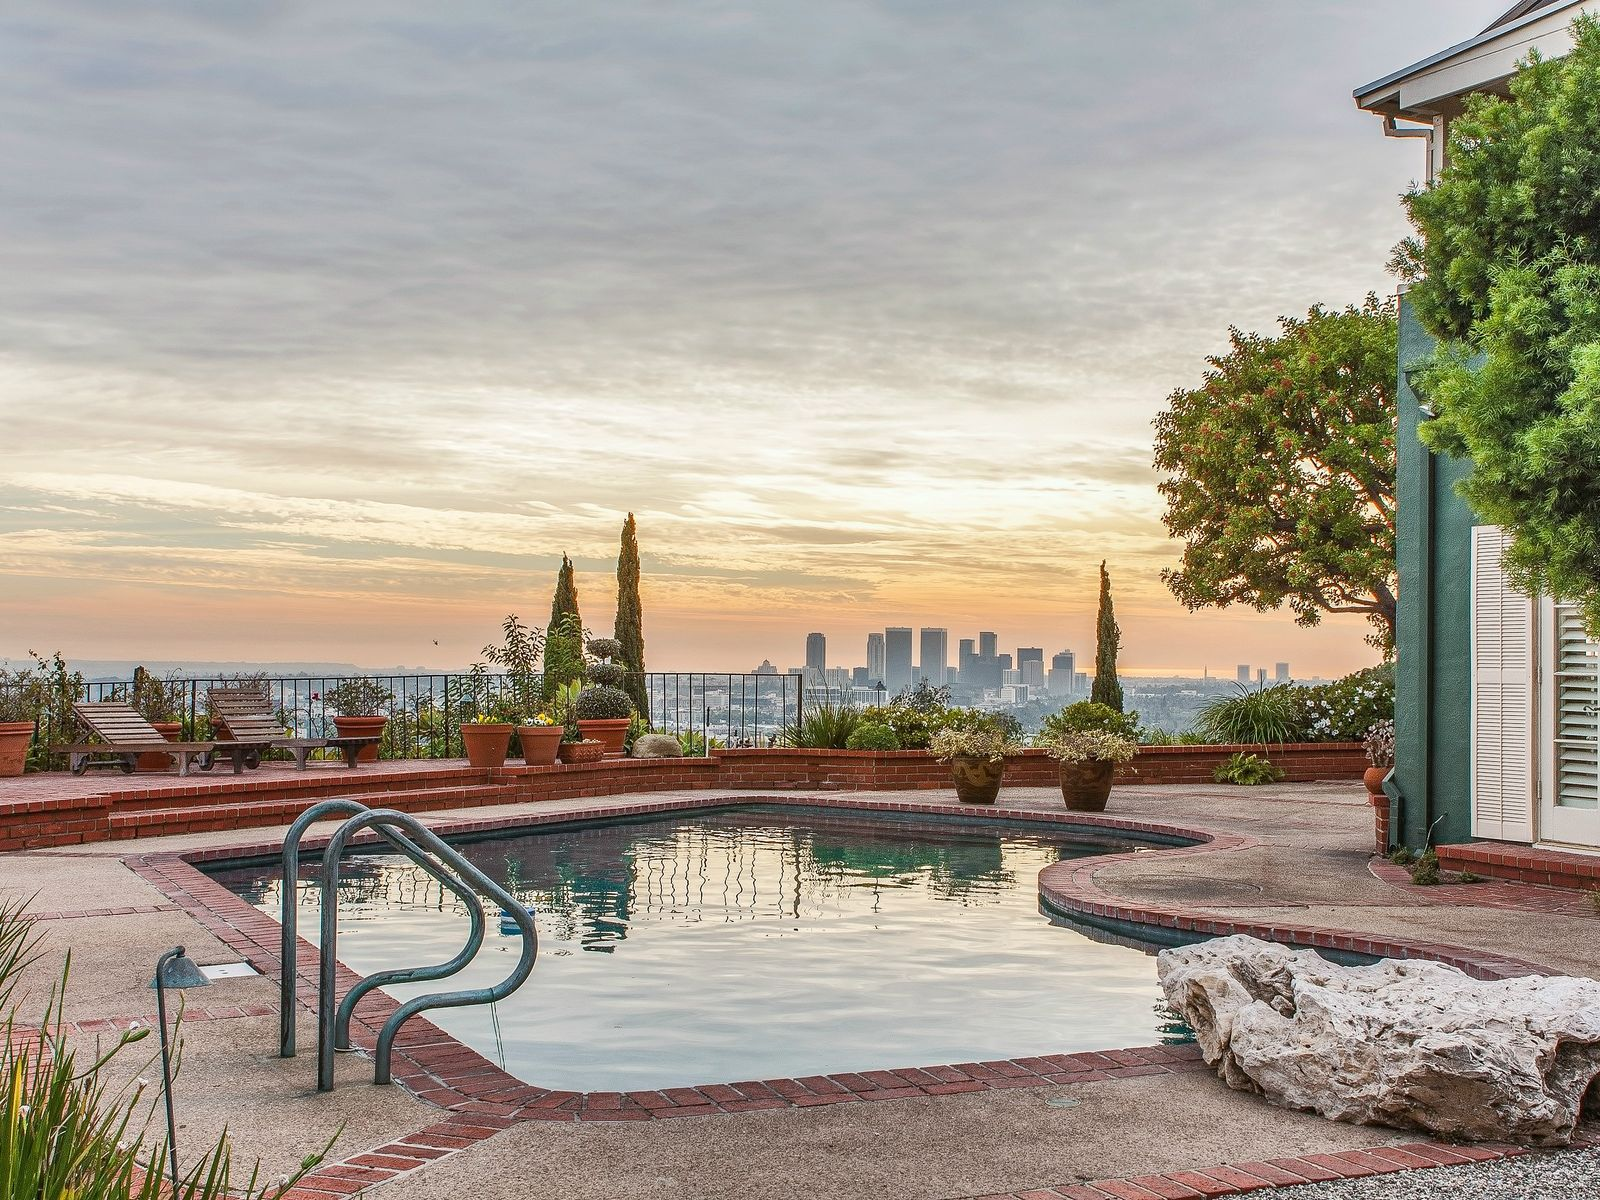 Sunset Strip 180 LA City to Ocean Views, Los Angeles CA Single Family Home - Los Angeles Real Estate